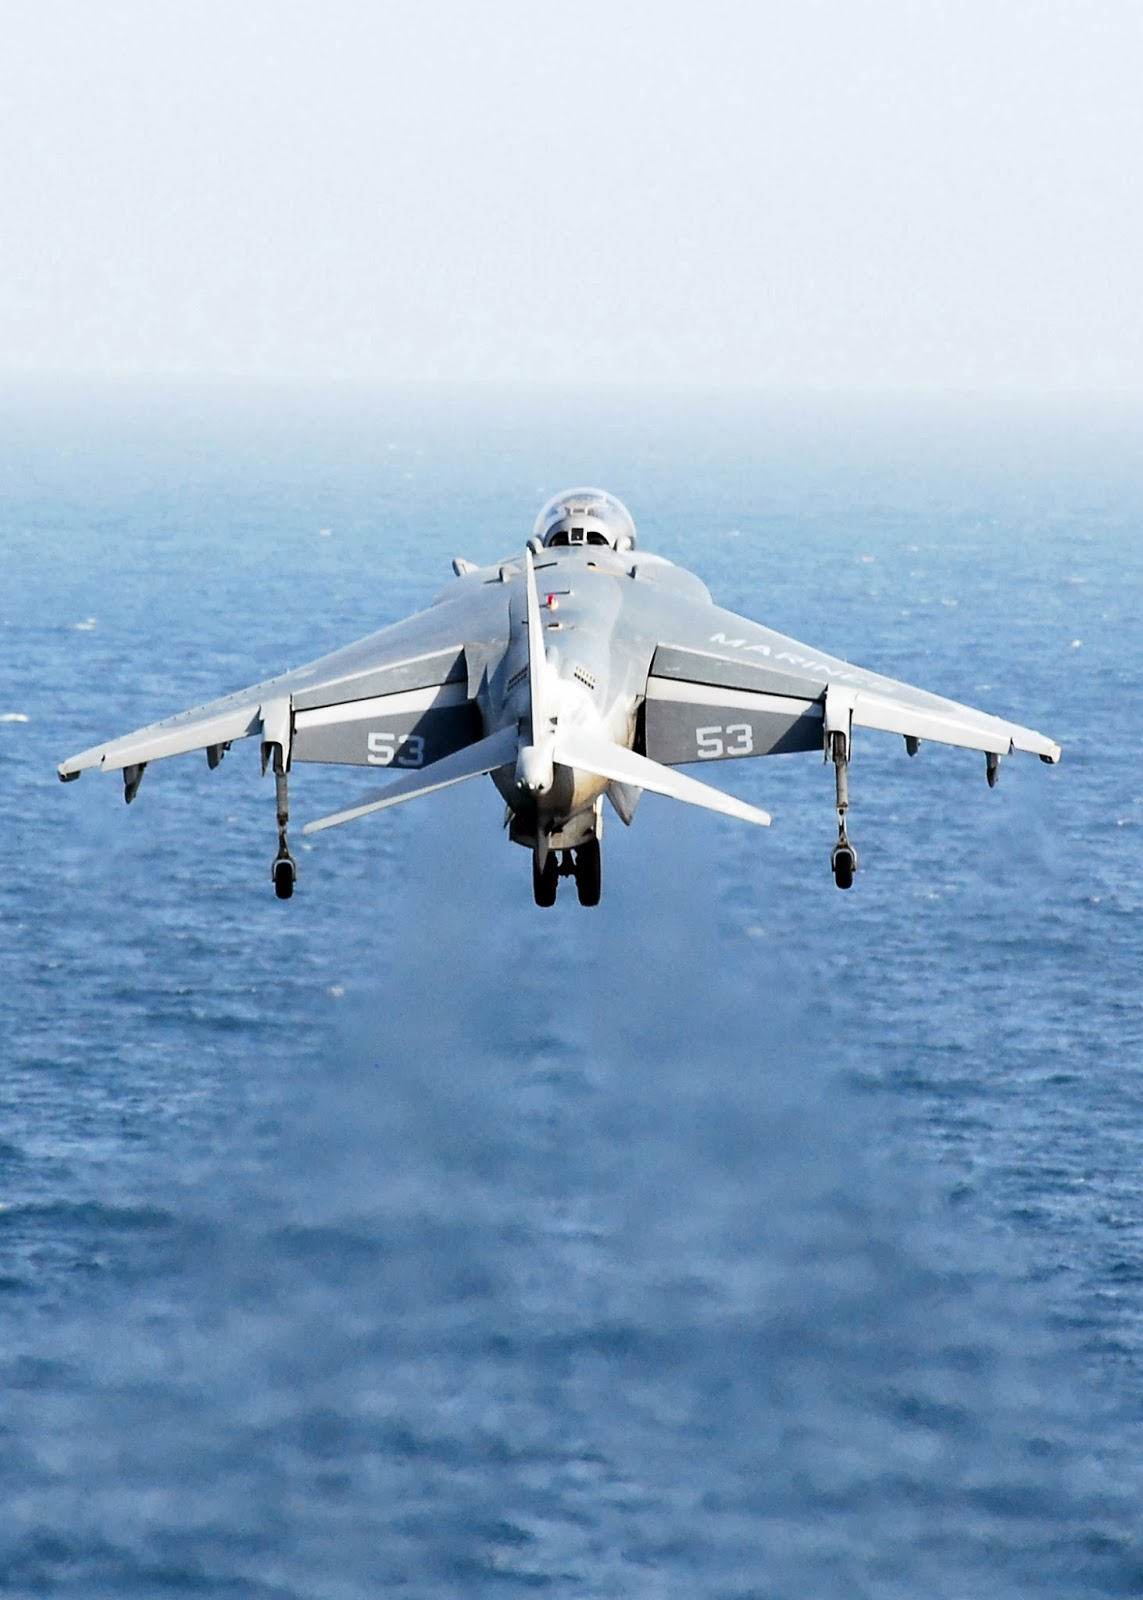 Harrier Jump Jet Hovering